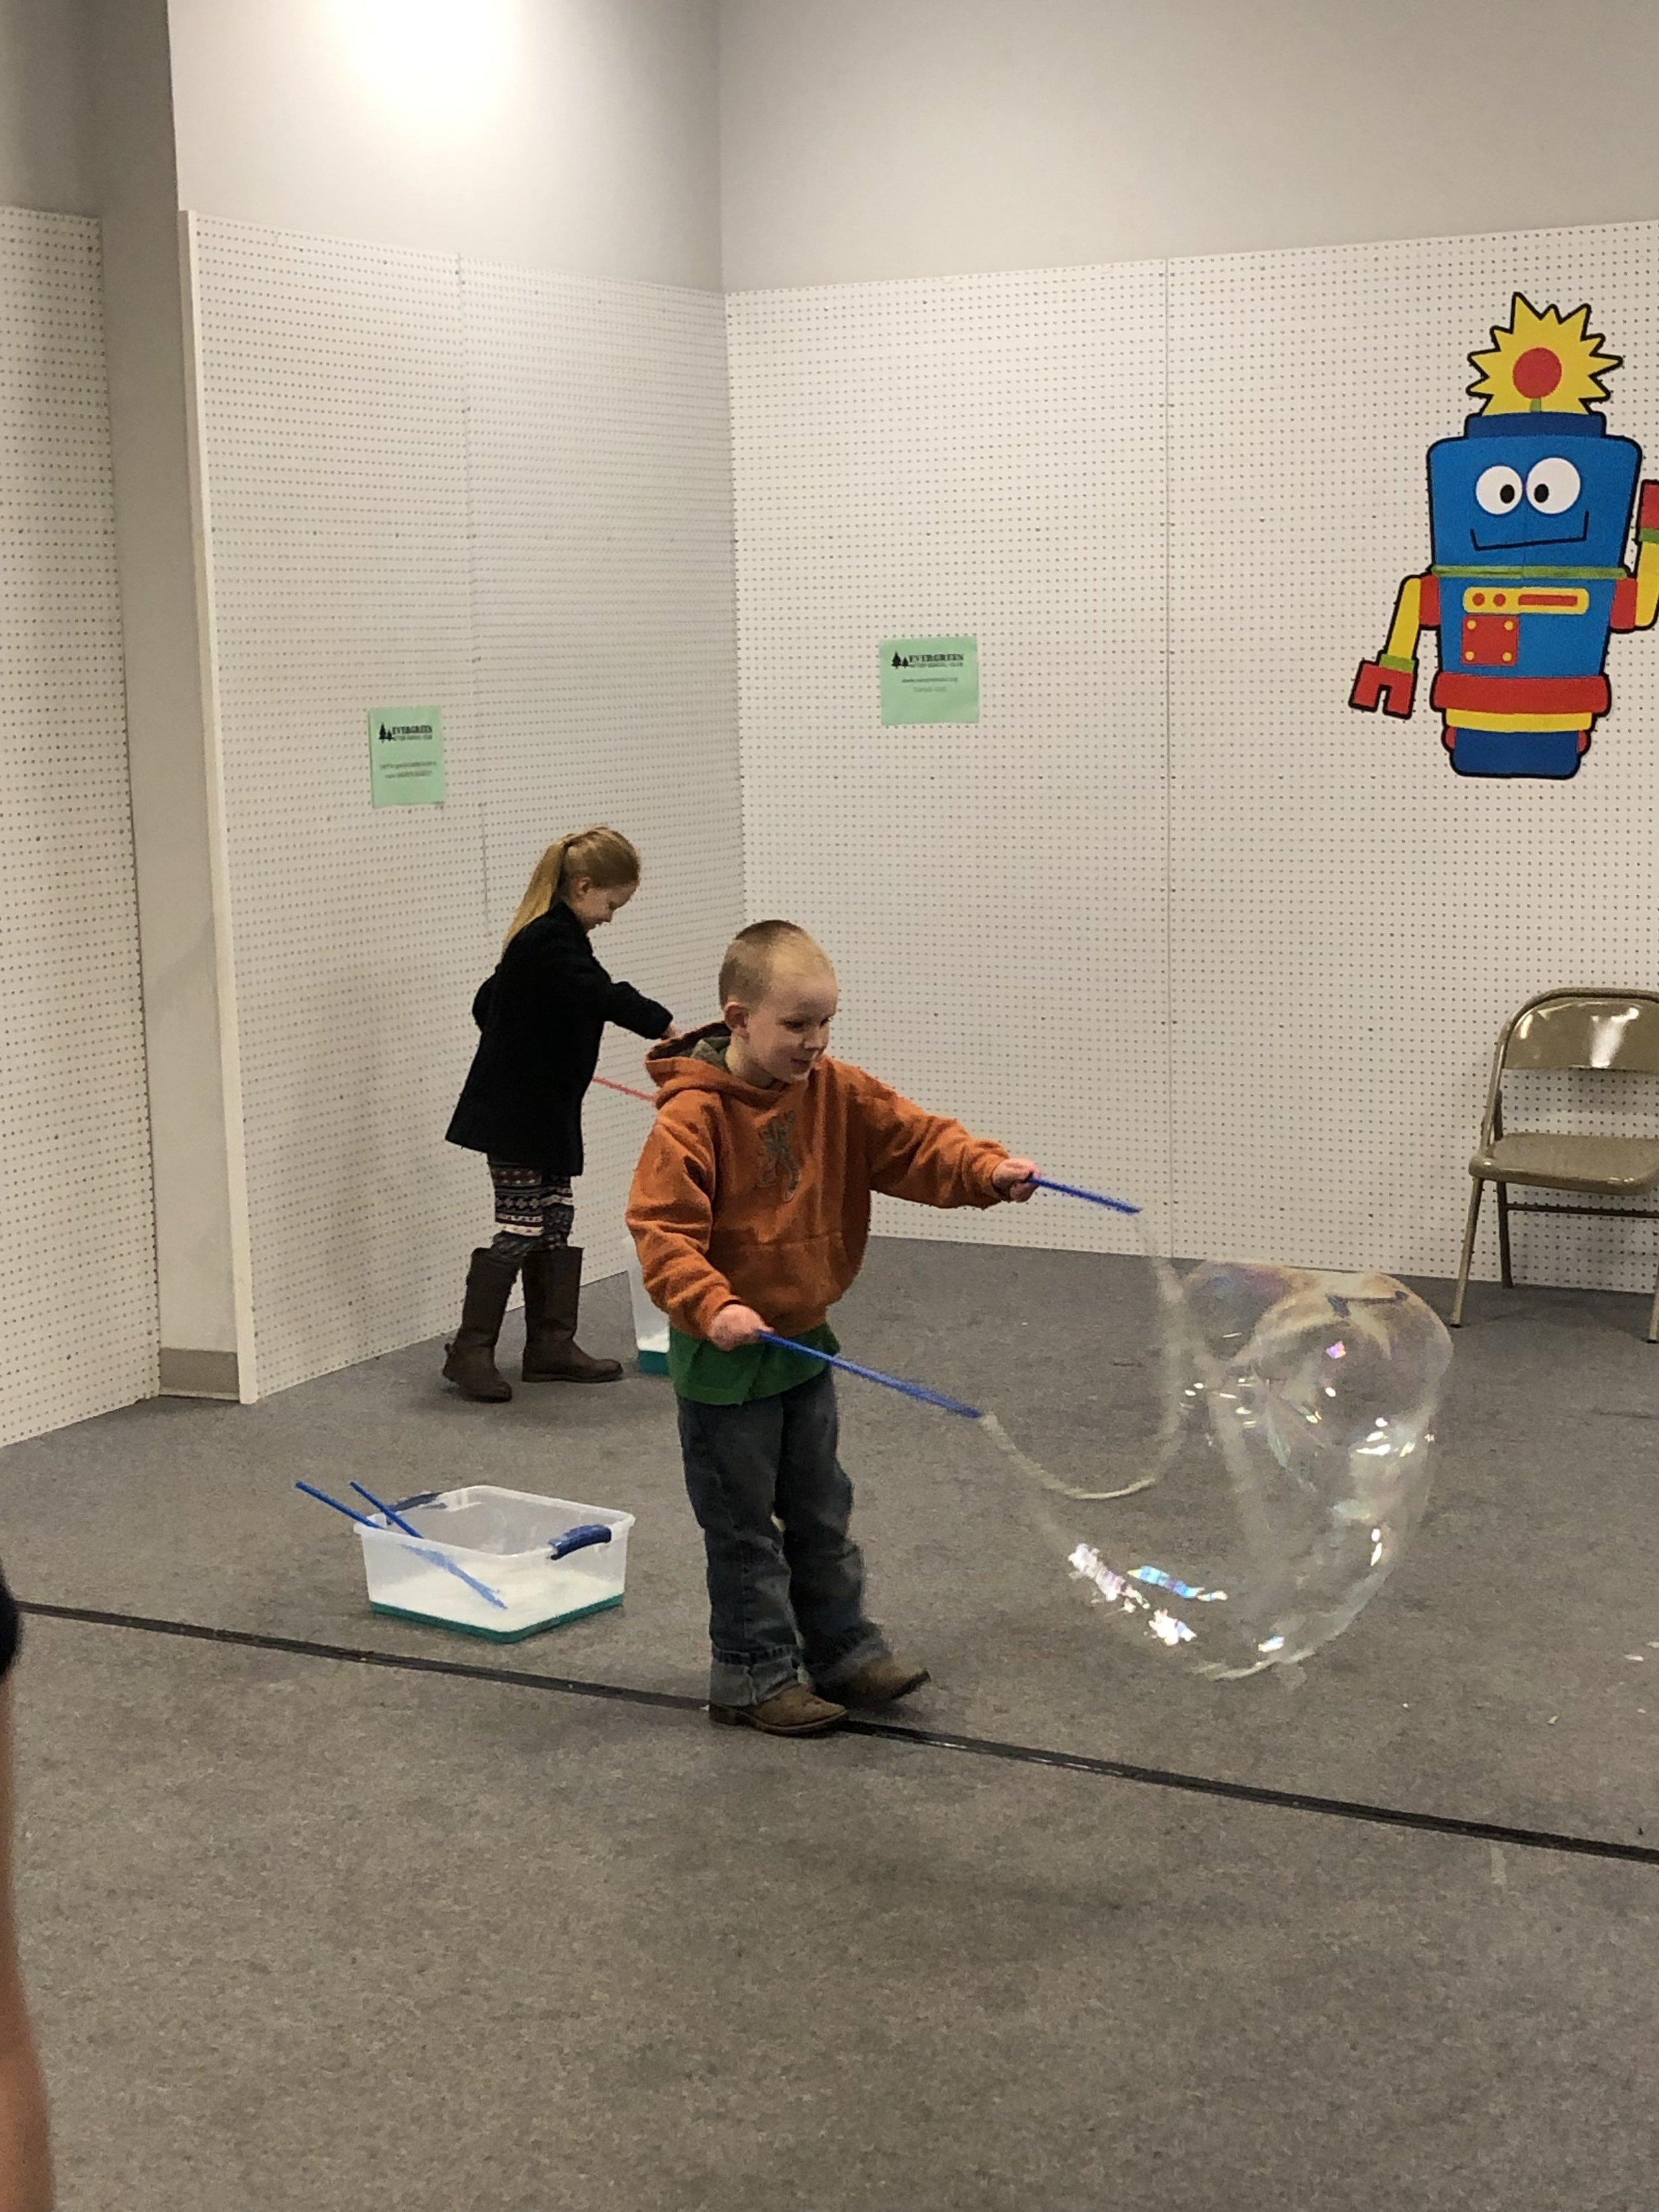 Evergreen After School Clubs - Family Fun Fest Saturday March 2, 2019